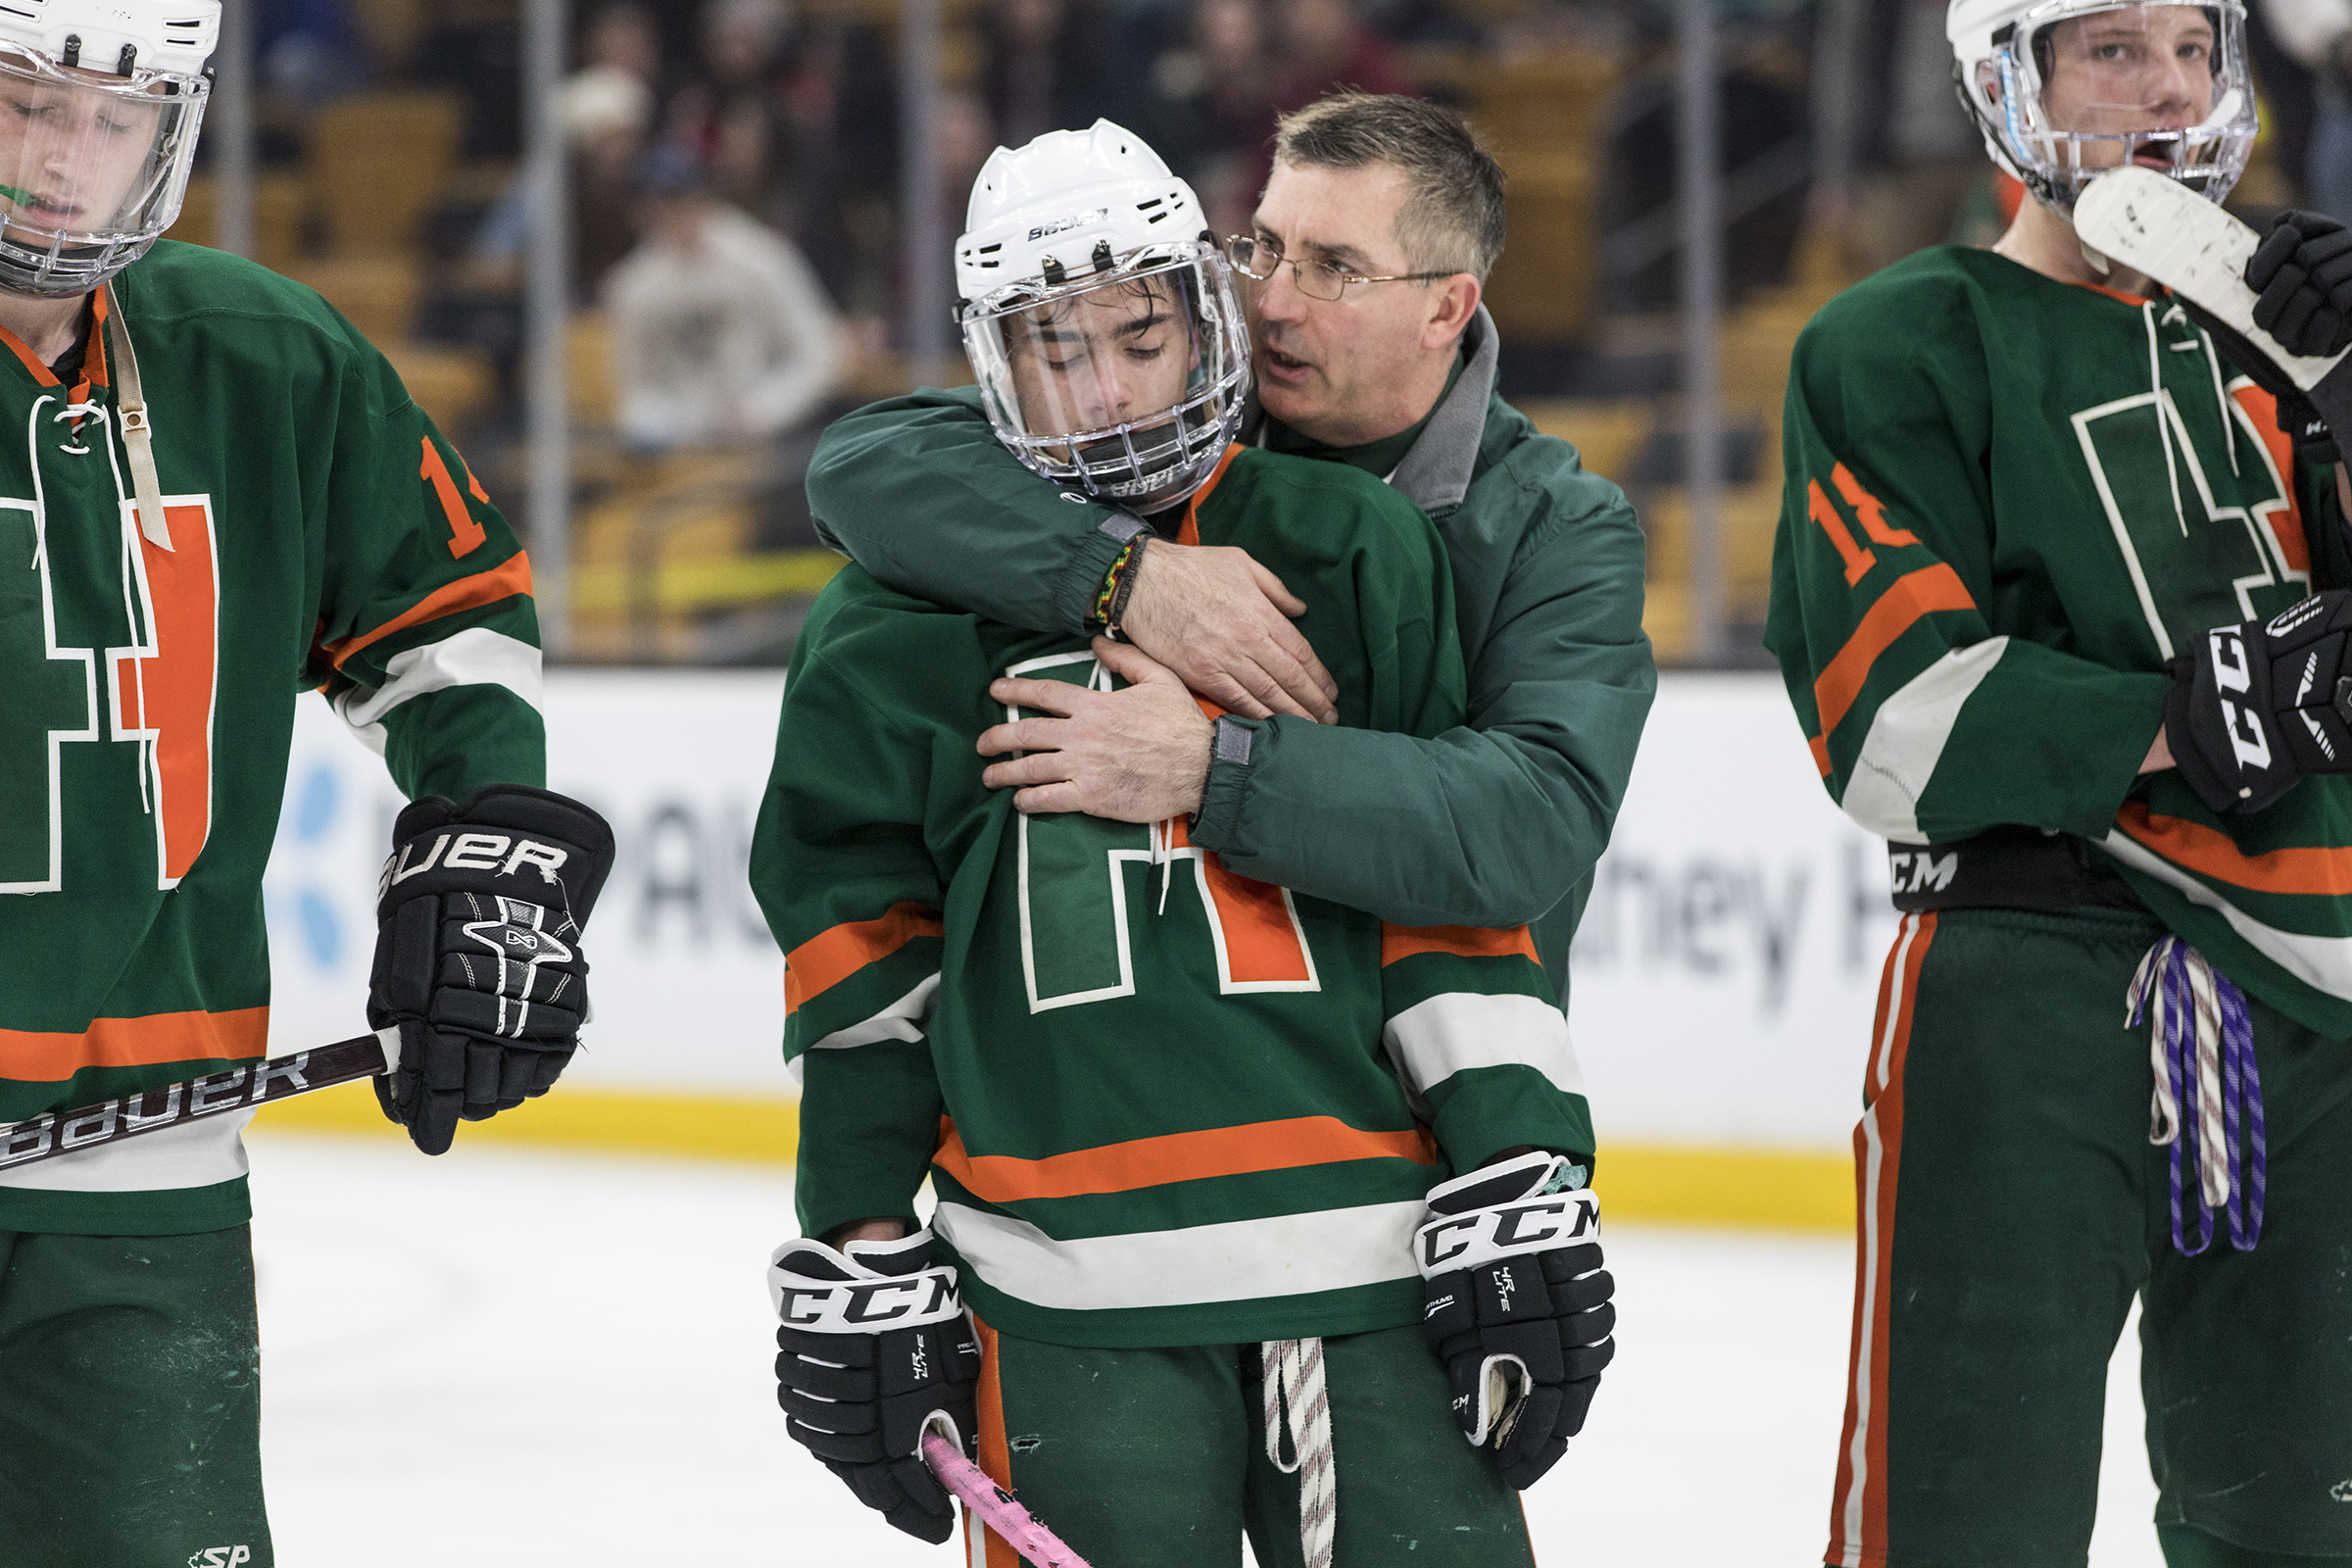 Hopkinton assistant coach Scott O'Connor hugs junior Kyle Rogers after the Mountaineers of Wachusett Regional defeated the Hillers, 3-2, in the Division 3 state championship game at the TD Garden in Boston, March 17, 2019.